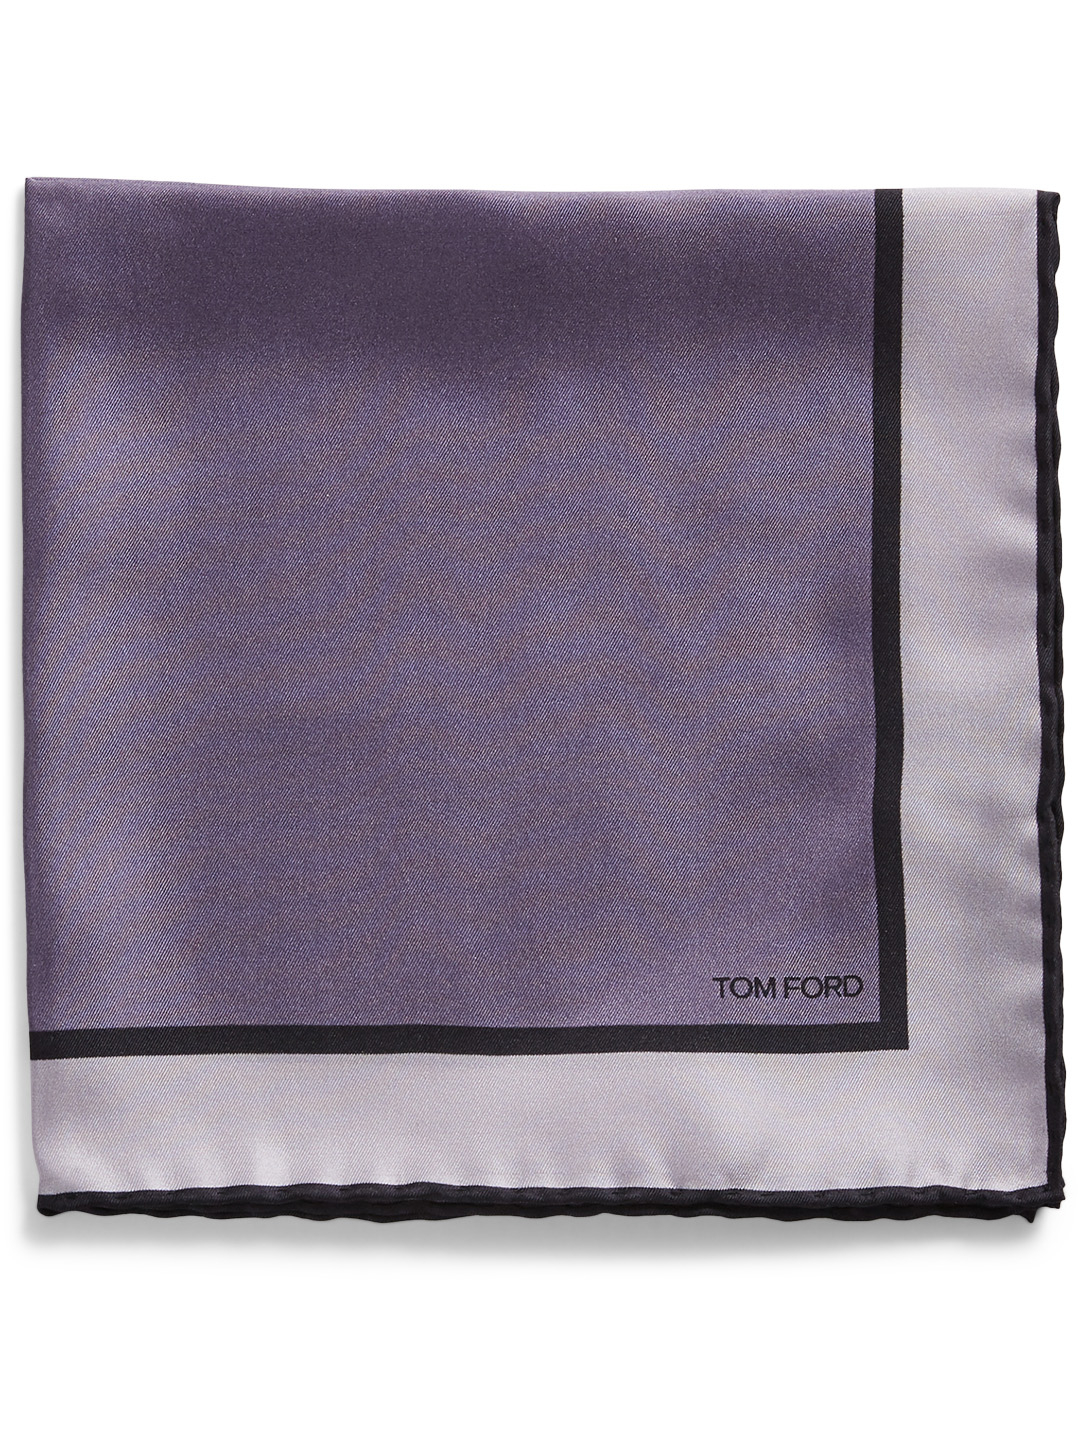 TOM FORD Silk Pocket Square Men's Purple